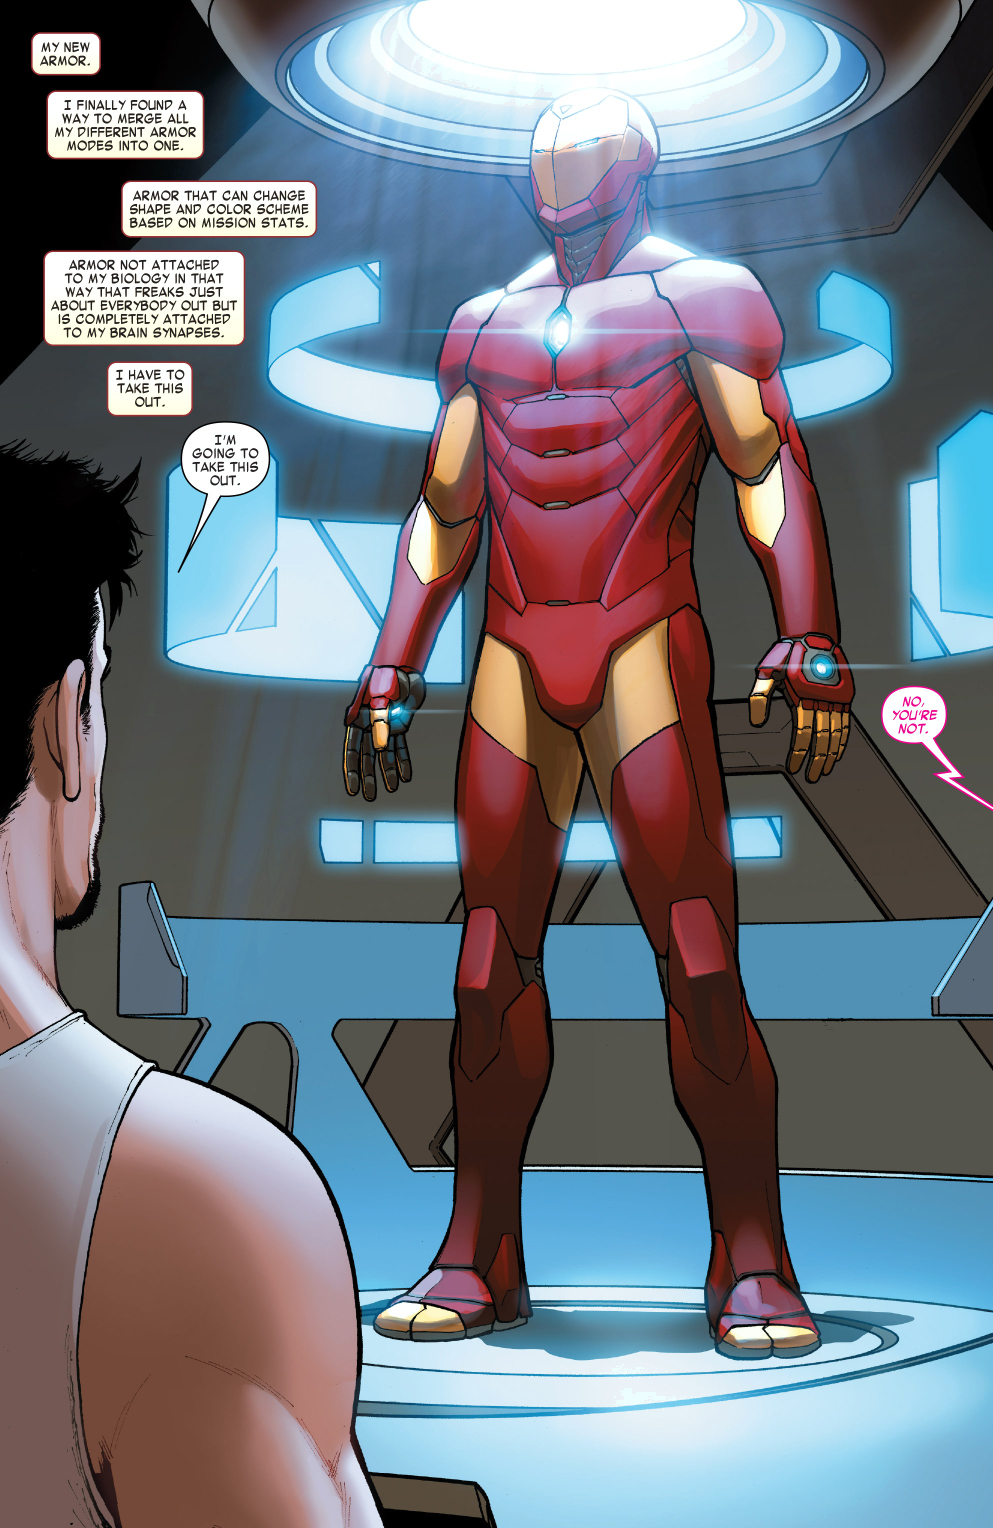 iron man's latest armor